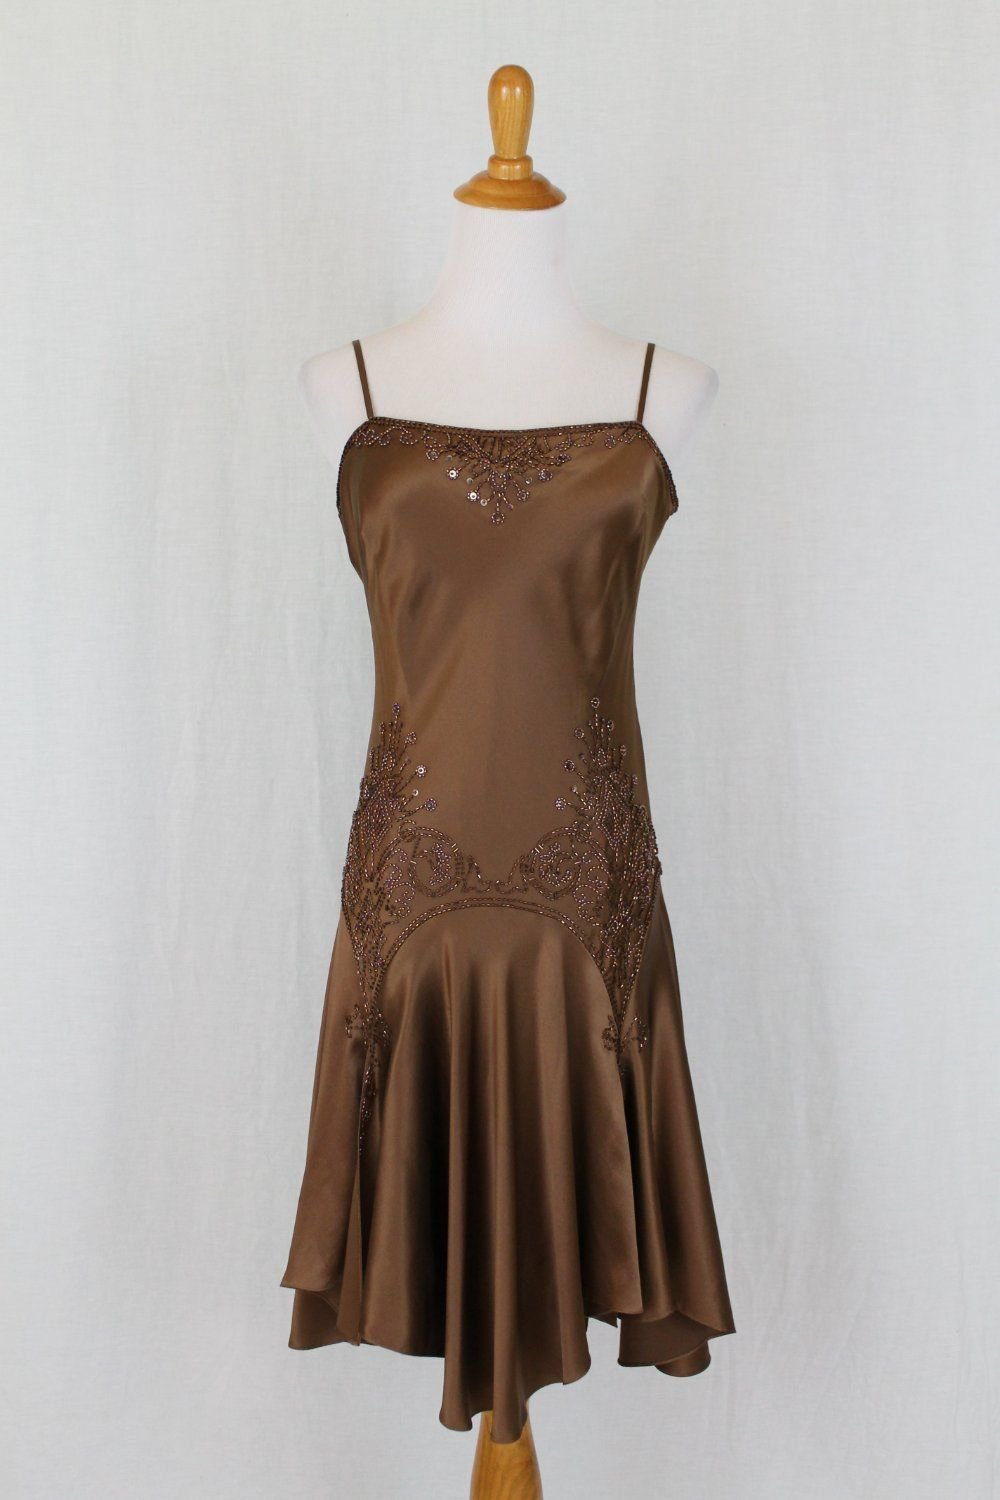 ADRIANNA PAPELL Beaded Bronze Silk Charmeuse 1920's Flapper Gatsby dress Gown 6